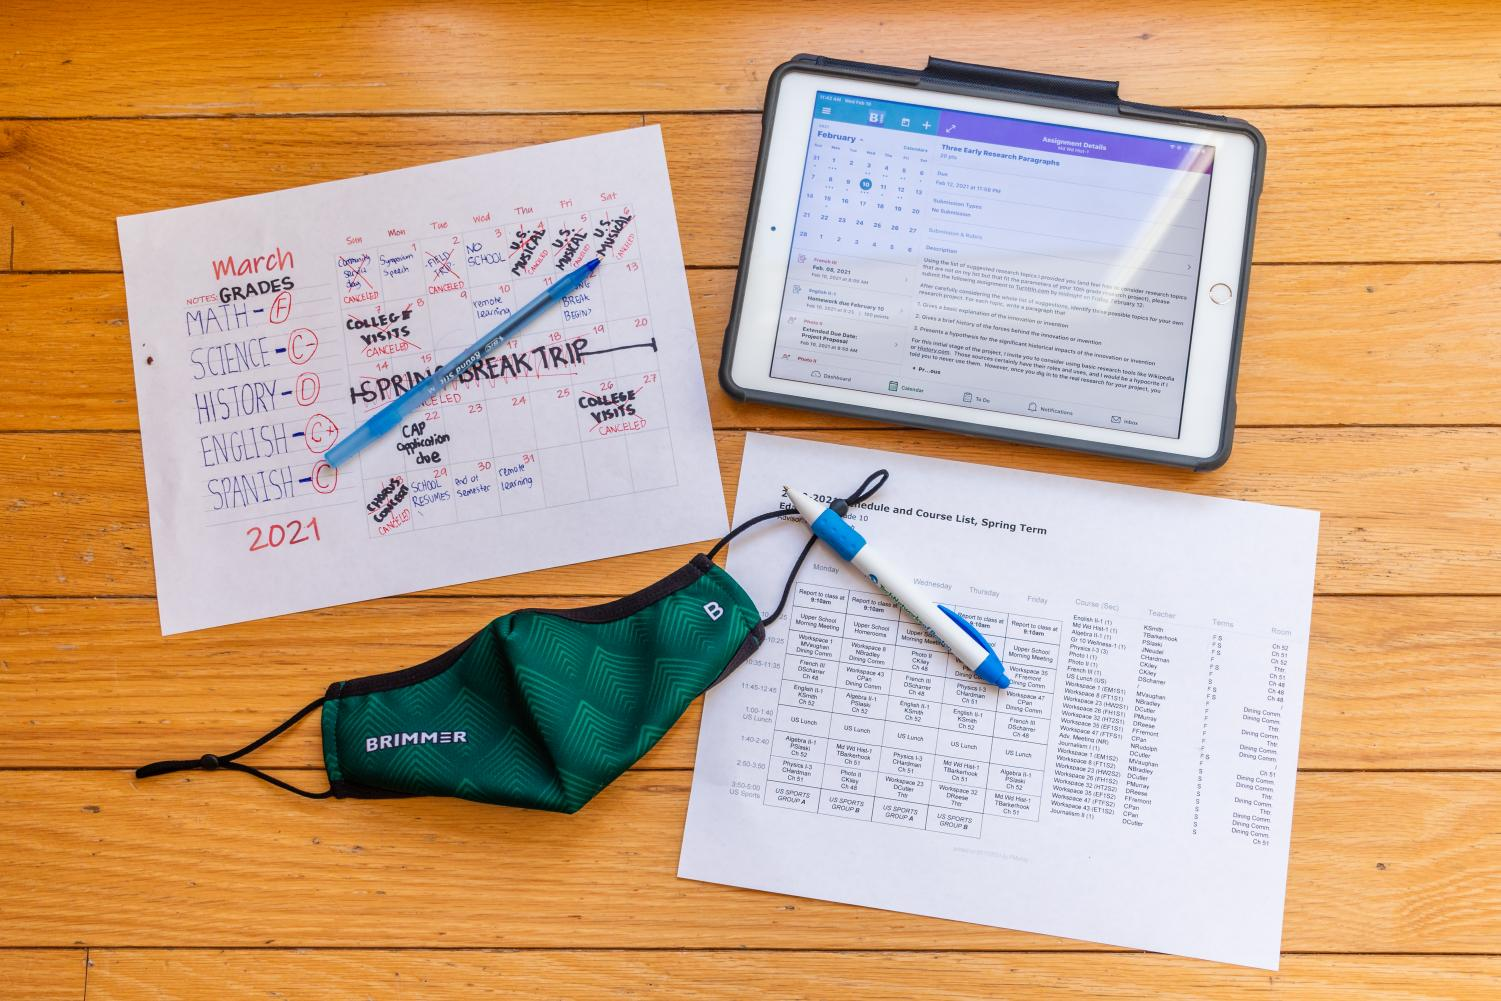 The pandemic has made academic planning more difficult for students and faculty. Photo illustration by Edan Zinn